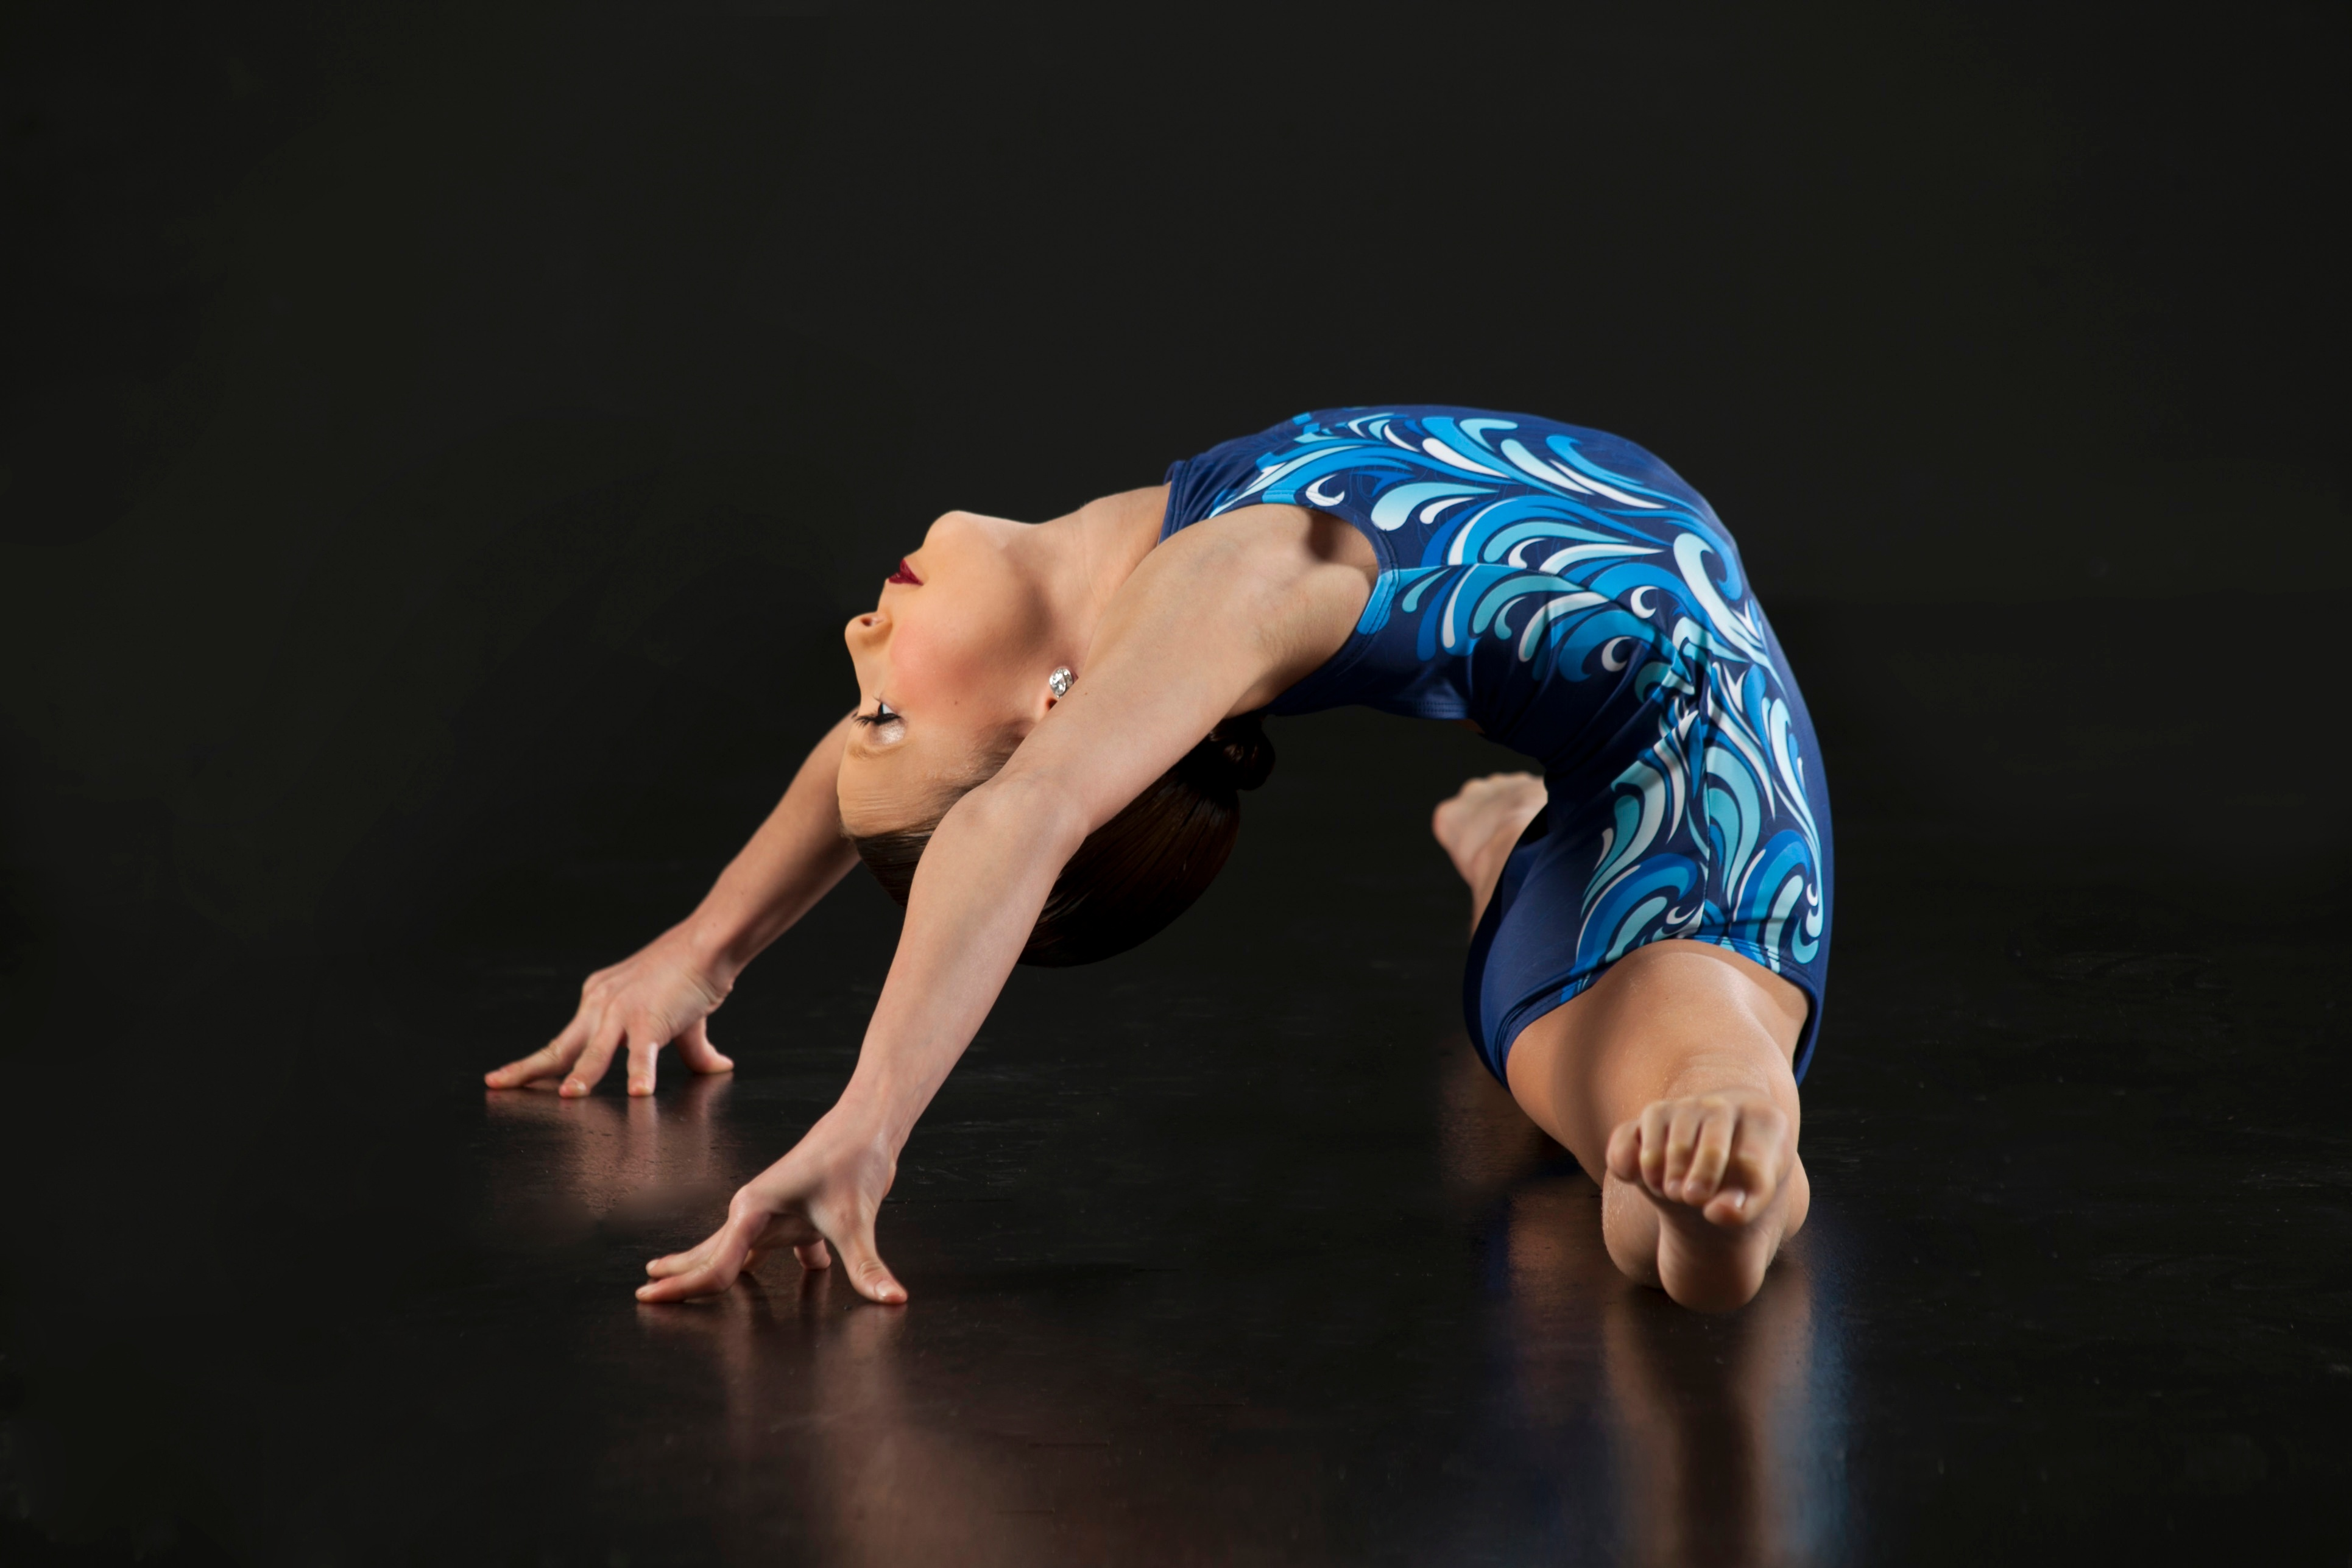 increase flexibility for dancers with these stretches